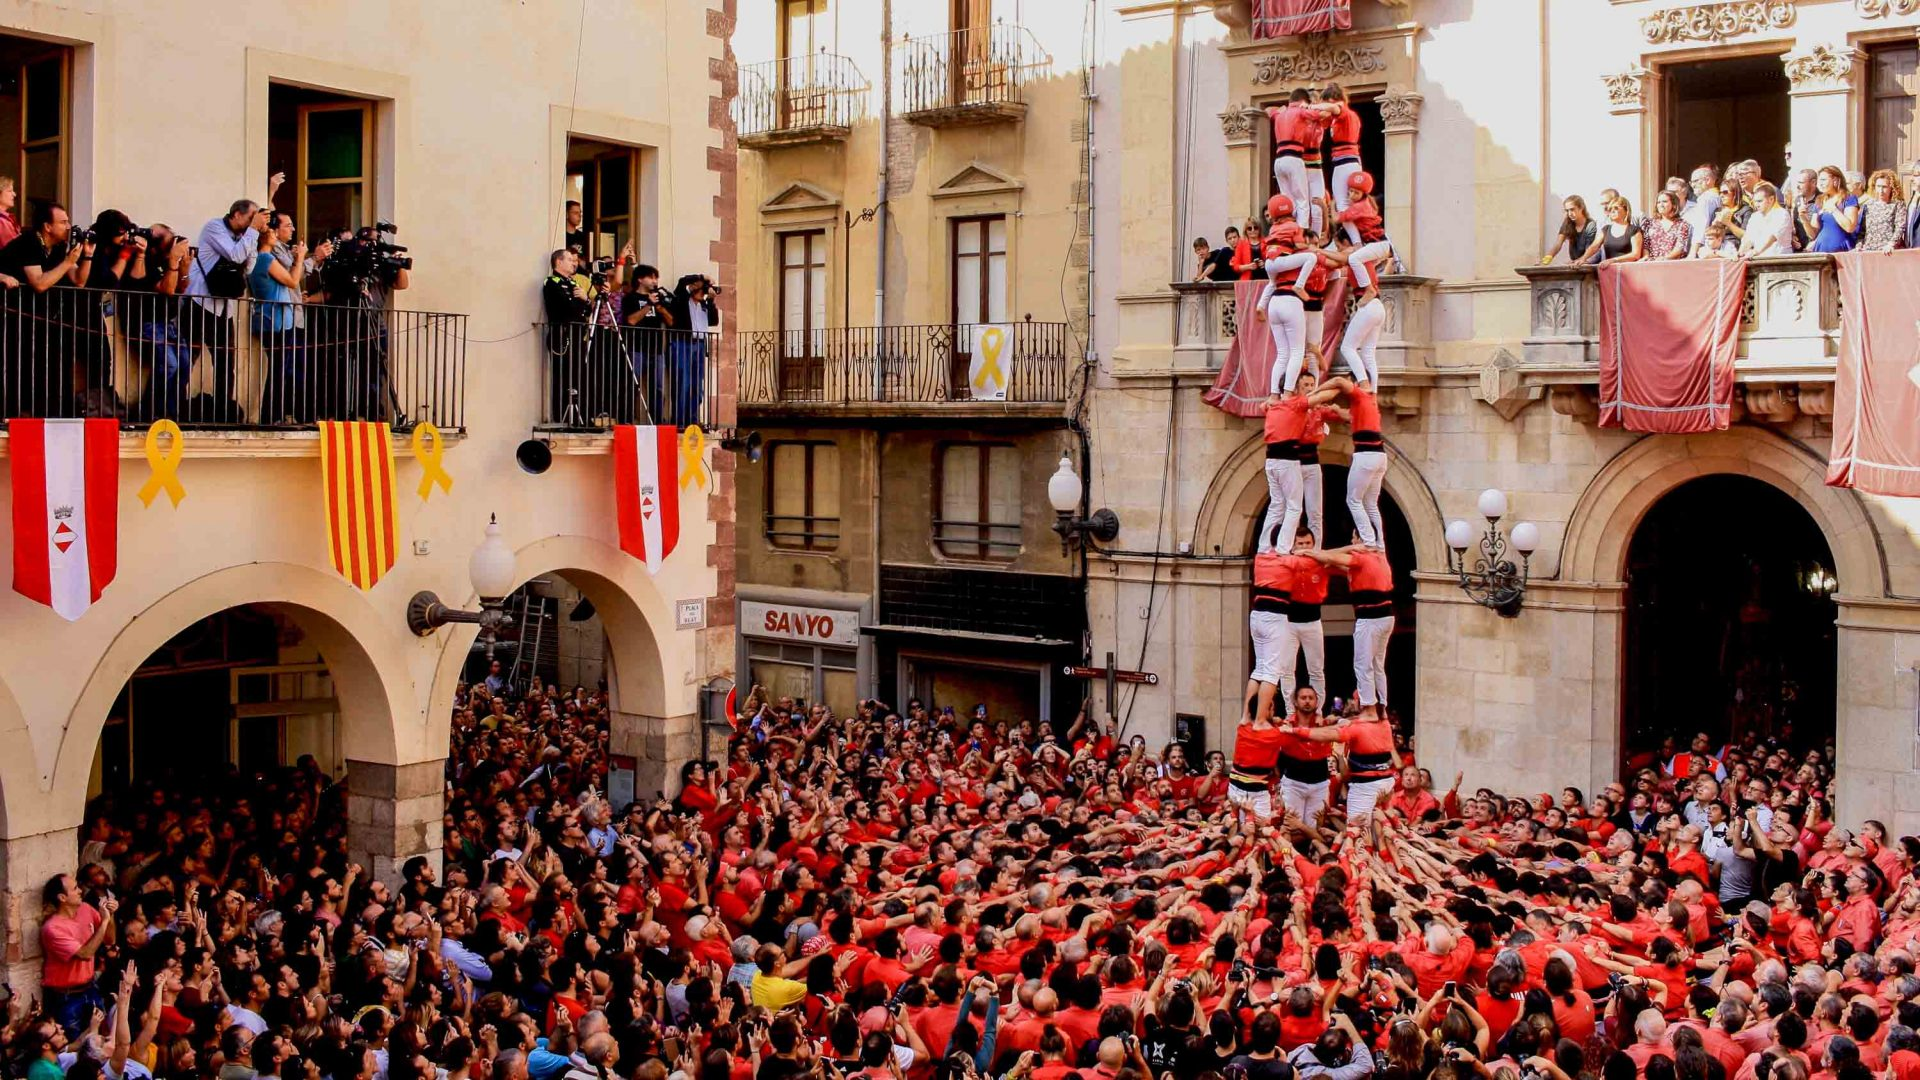 Behind the mind-boggling human carpentry of Catalonia's castellers